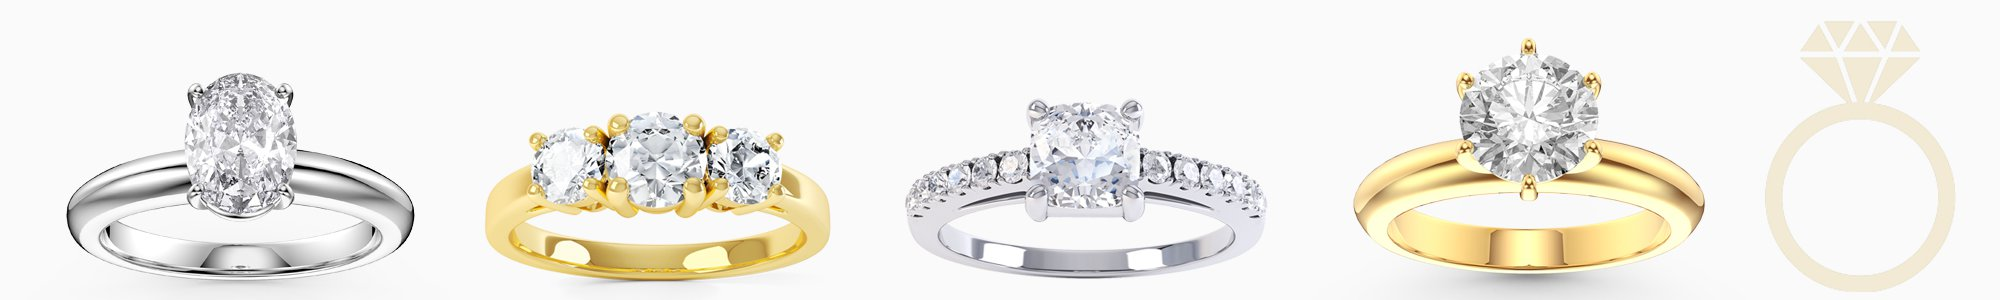 Shop Diamond Engagement Rings by Jian London. Buy direct and save from our wide selection of Rings at the Jian London jewelry Store. Free US Delivery